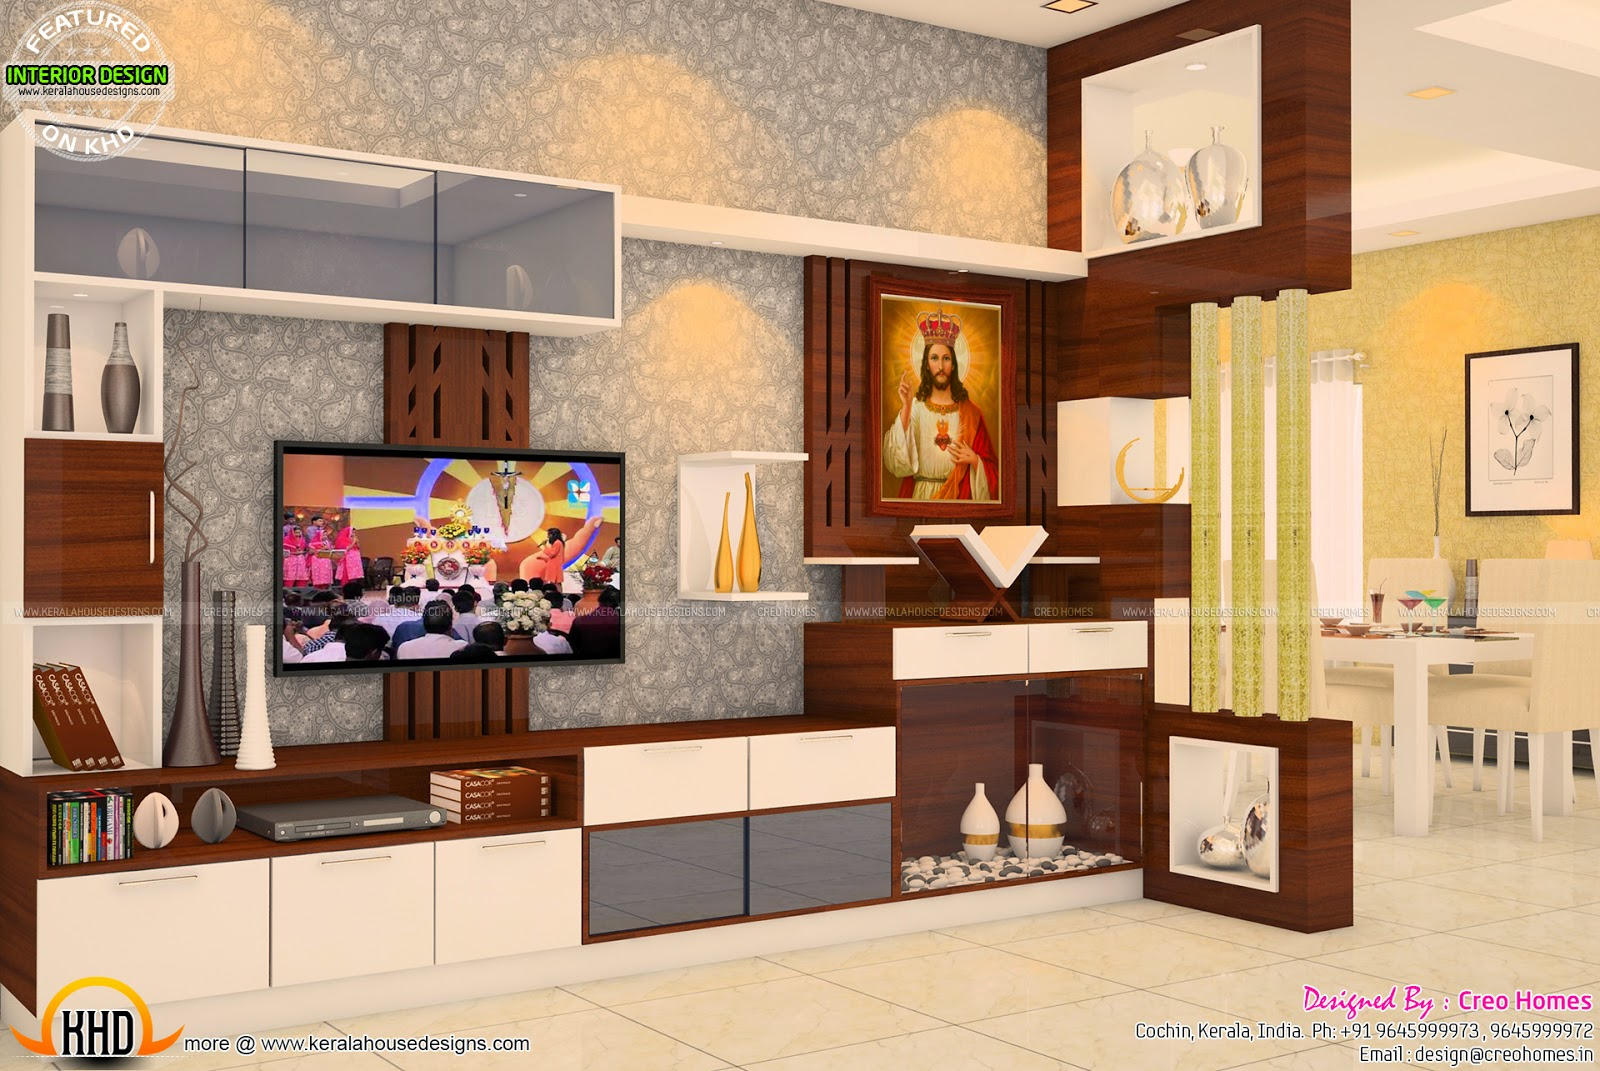 Living Prayer Kitchen Interiors Kerala Home Design And Floor Plans